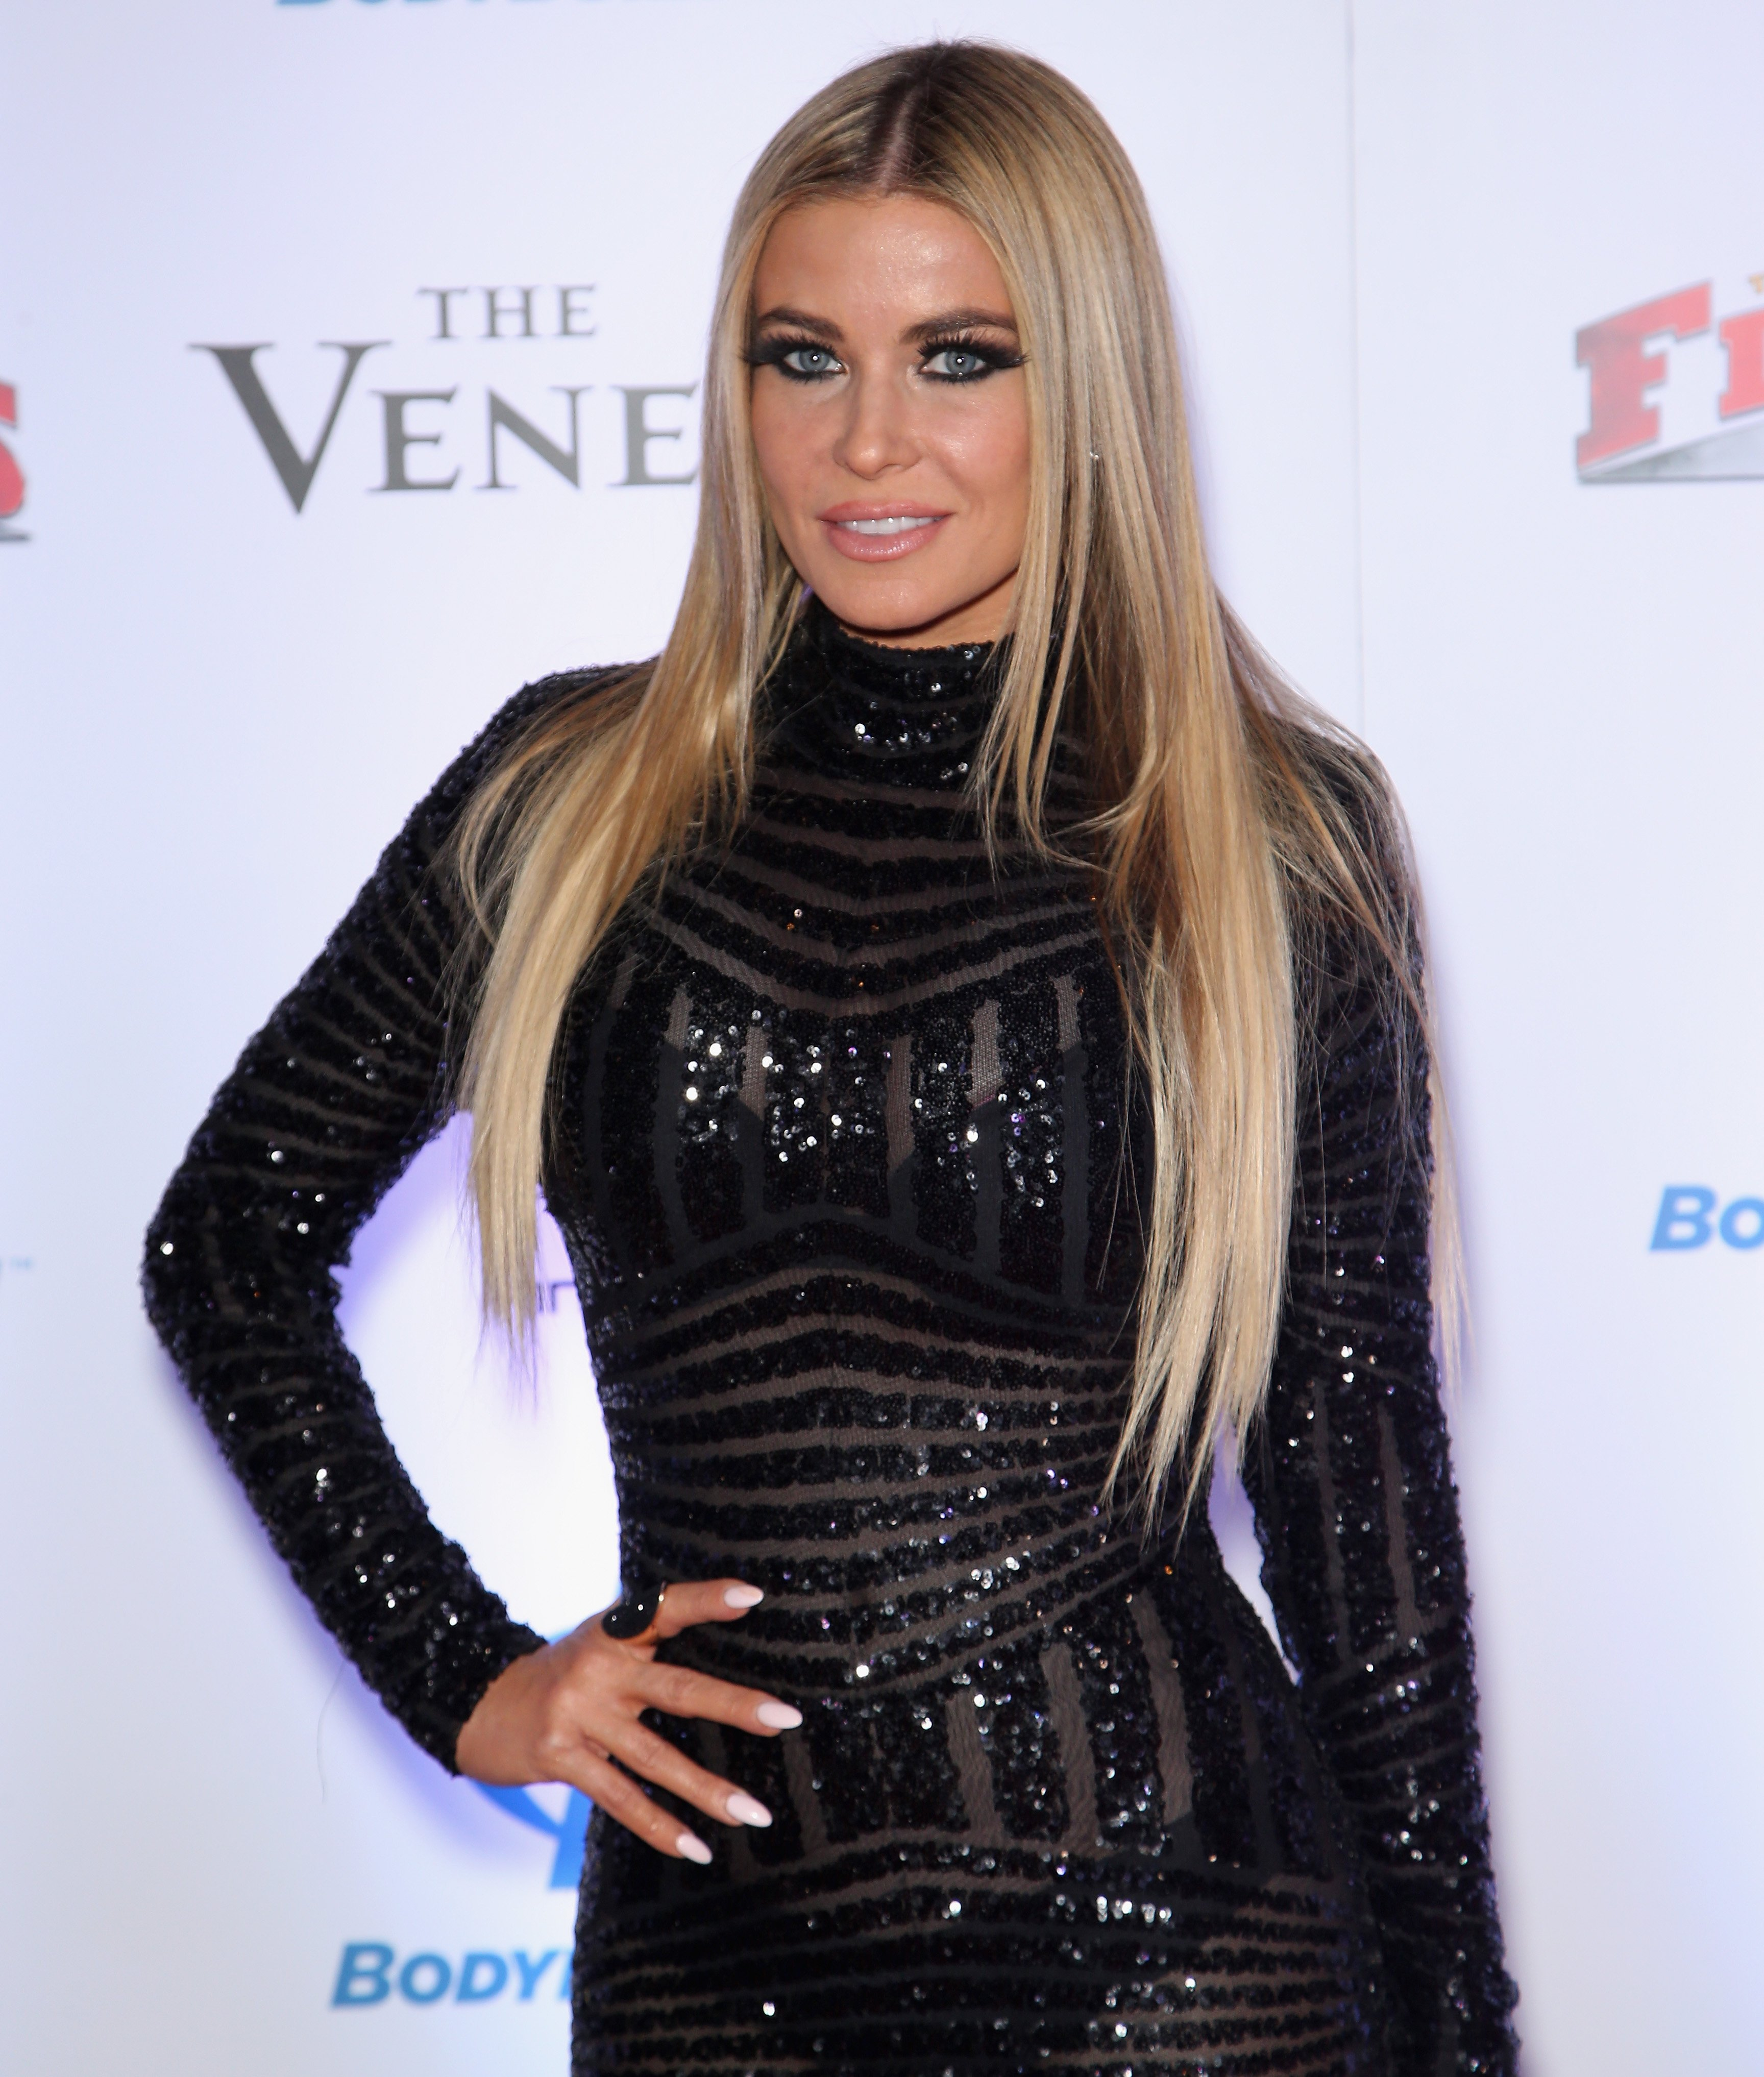 Carmen Electra. I Image: Getty Images.